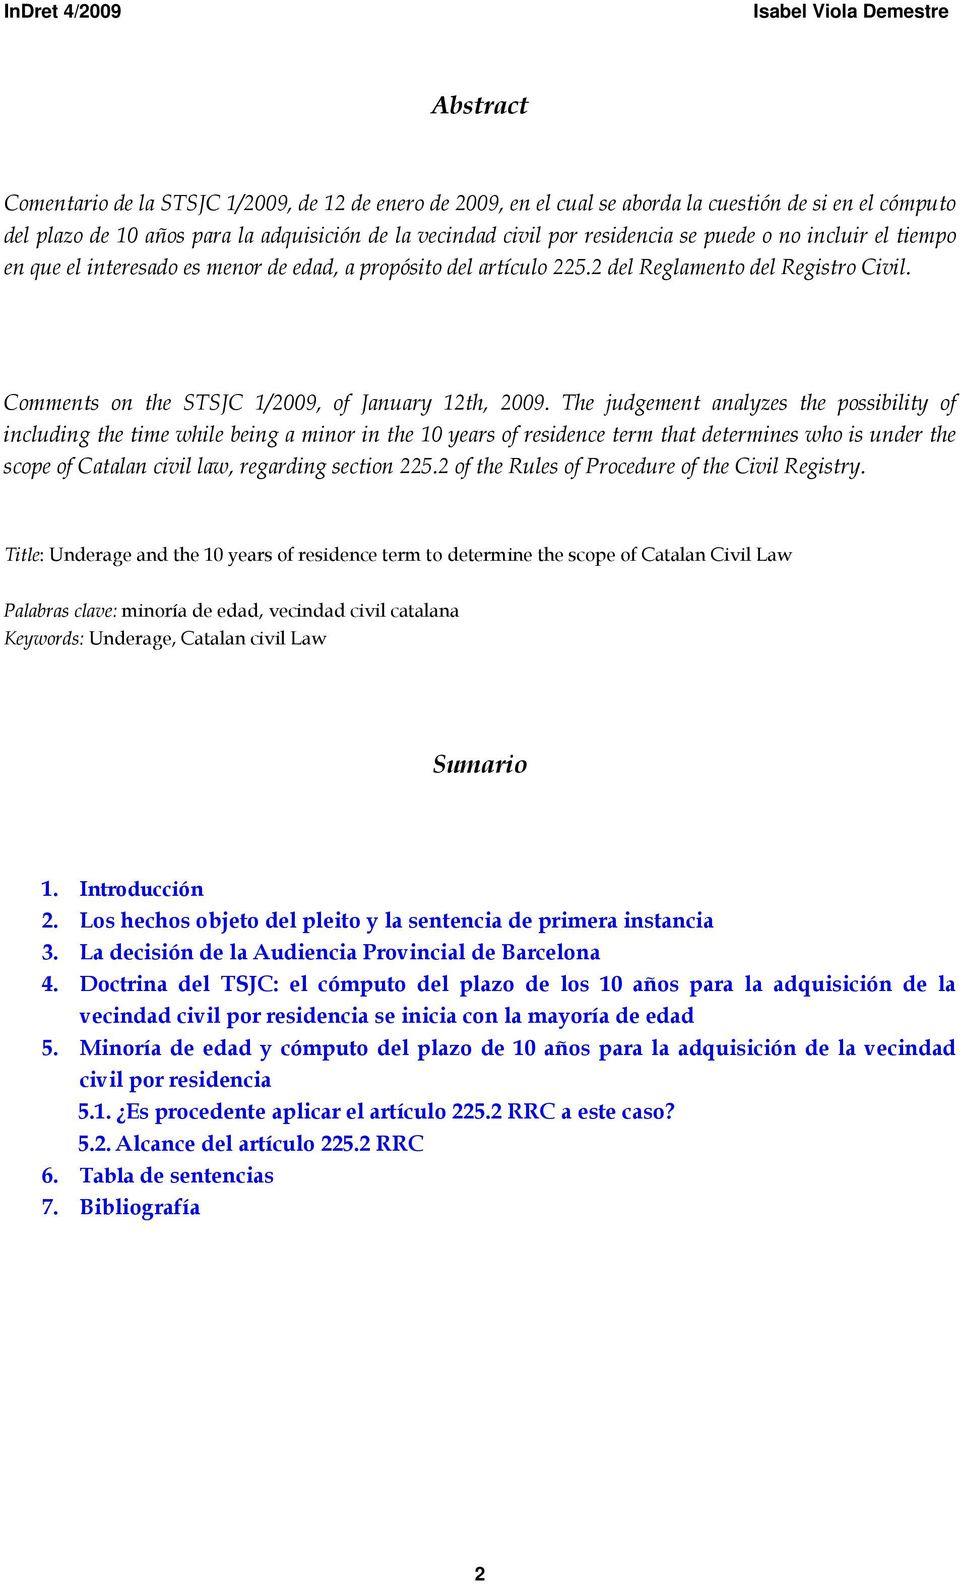 The judgement analyzes the possibility of including the time while being a minor in the 10 years of residence term that determines who is under the scope of Catalan civil law, regarding section 225.